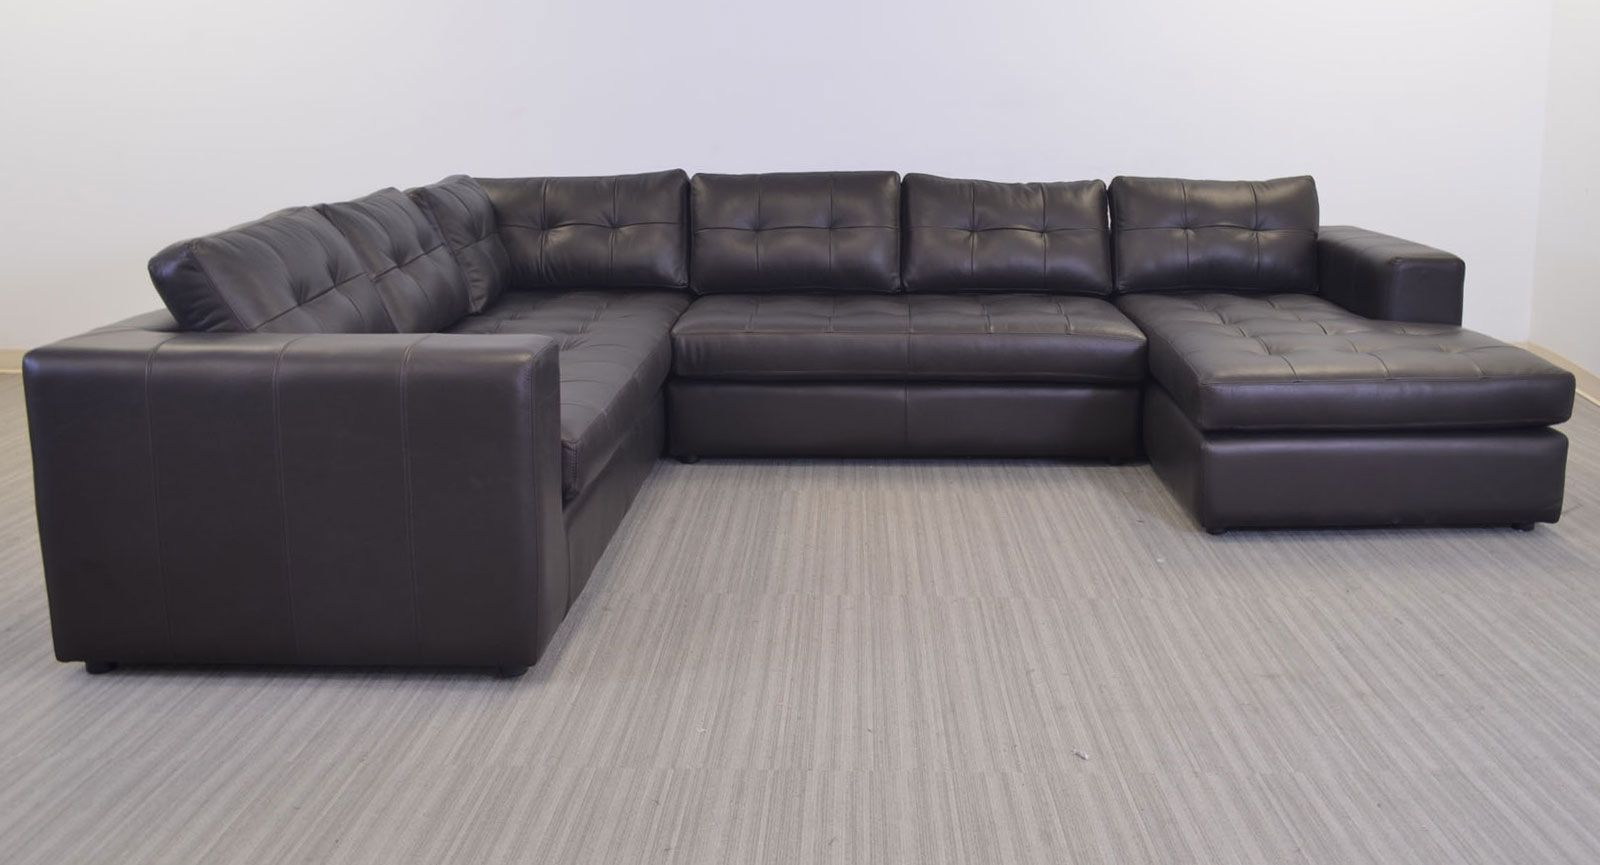 Gev Sofa Sectional The Leather Company Clean Line Large Scale Contemporary Style Multi Room Functionality This Was Hand